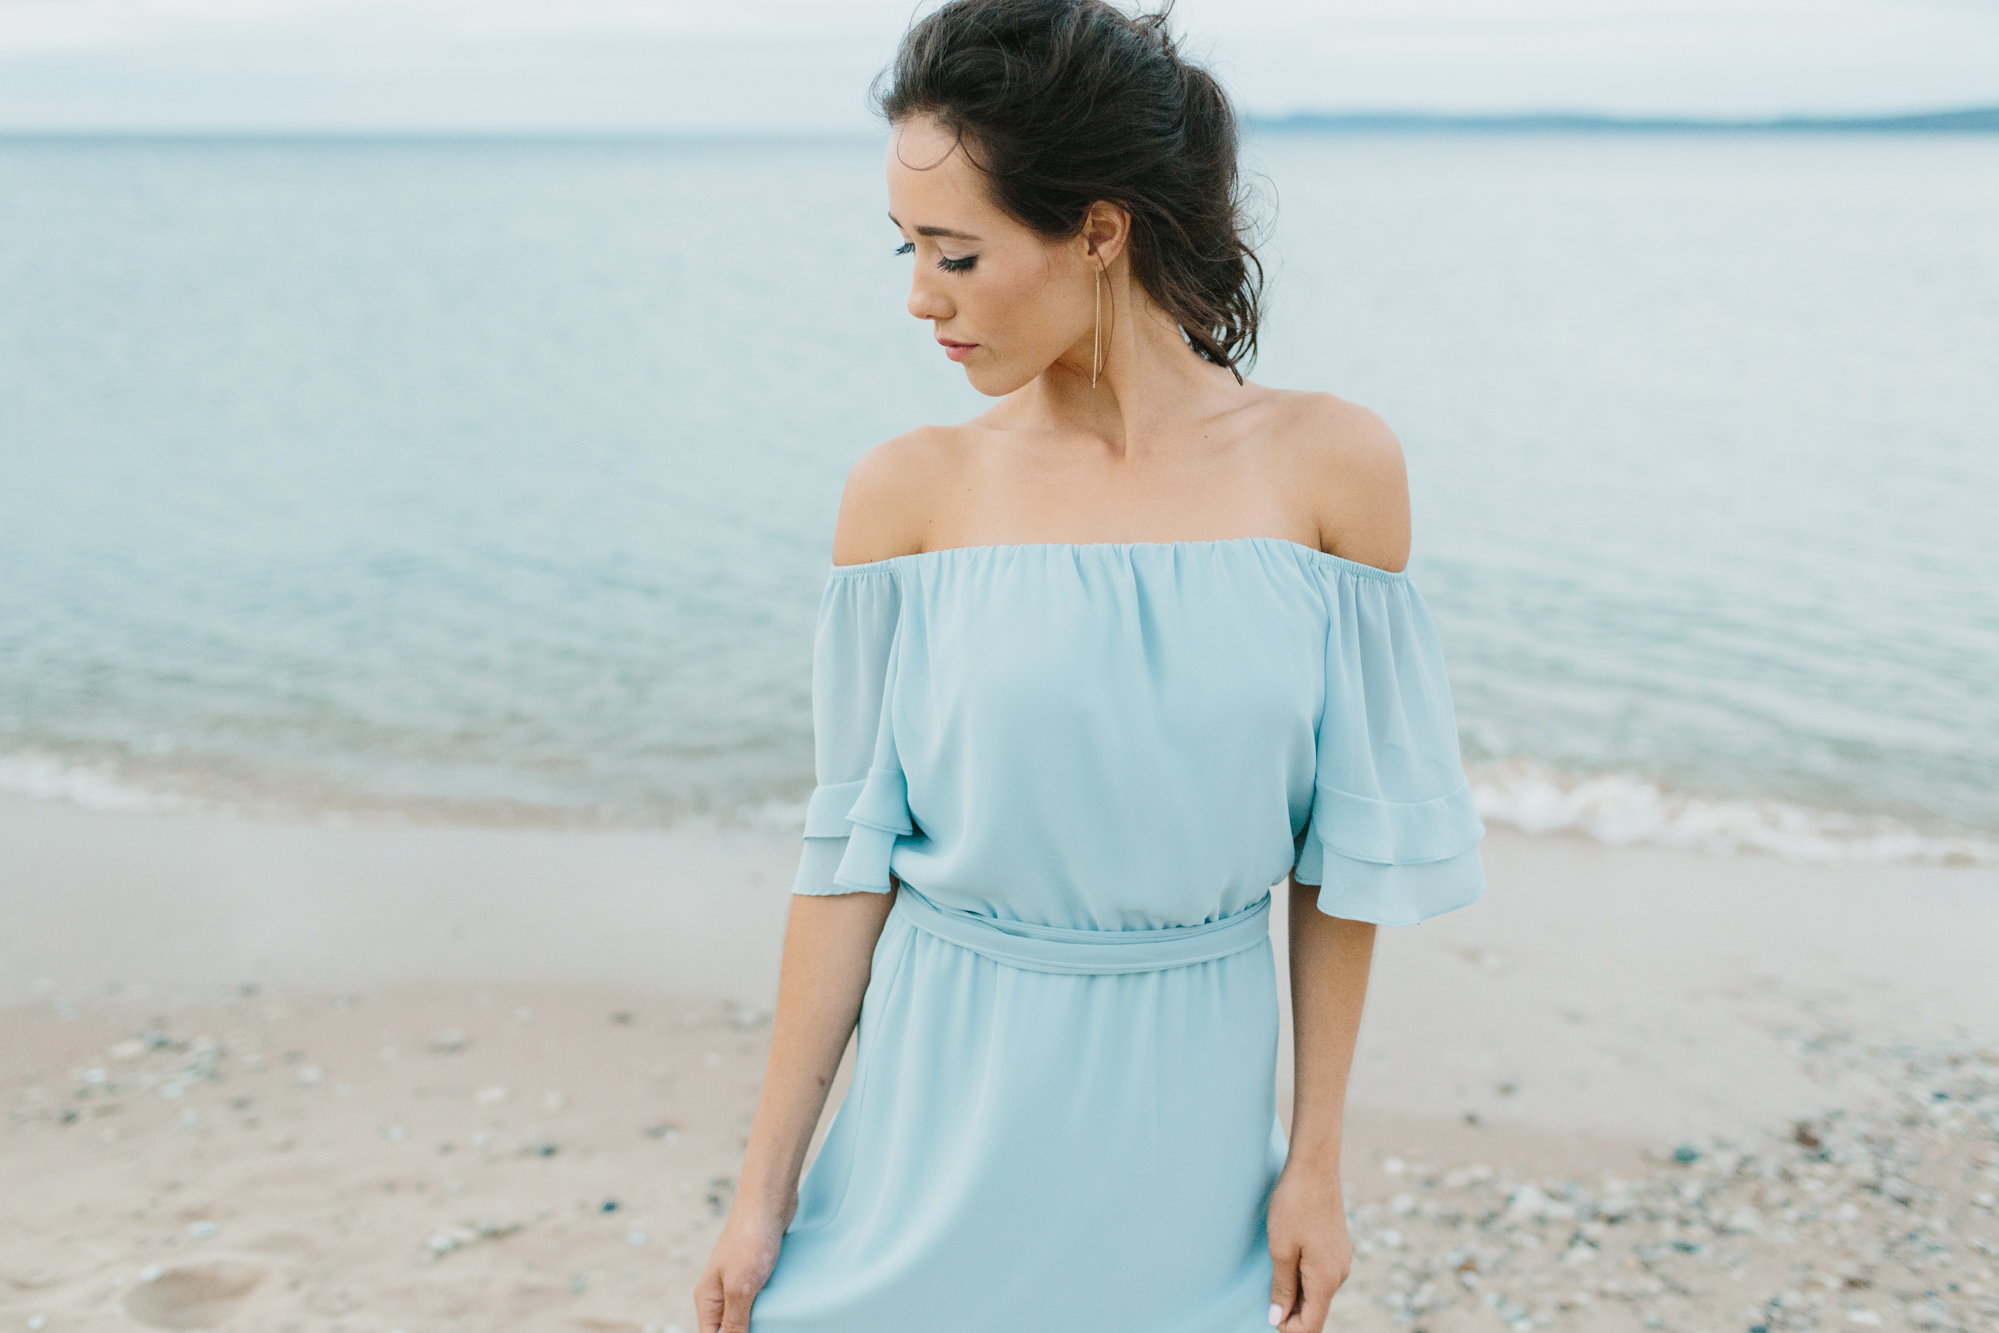 Sleeping Bear Dunes Bridal Portraits Wedding Photographer Mae Stier-045.jpg